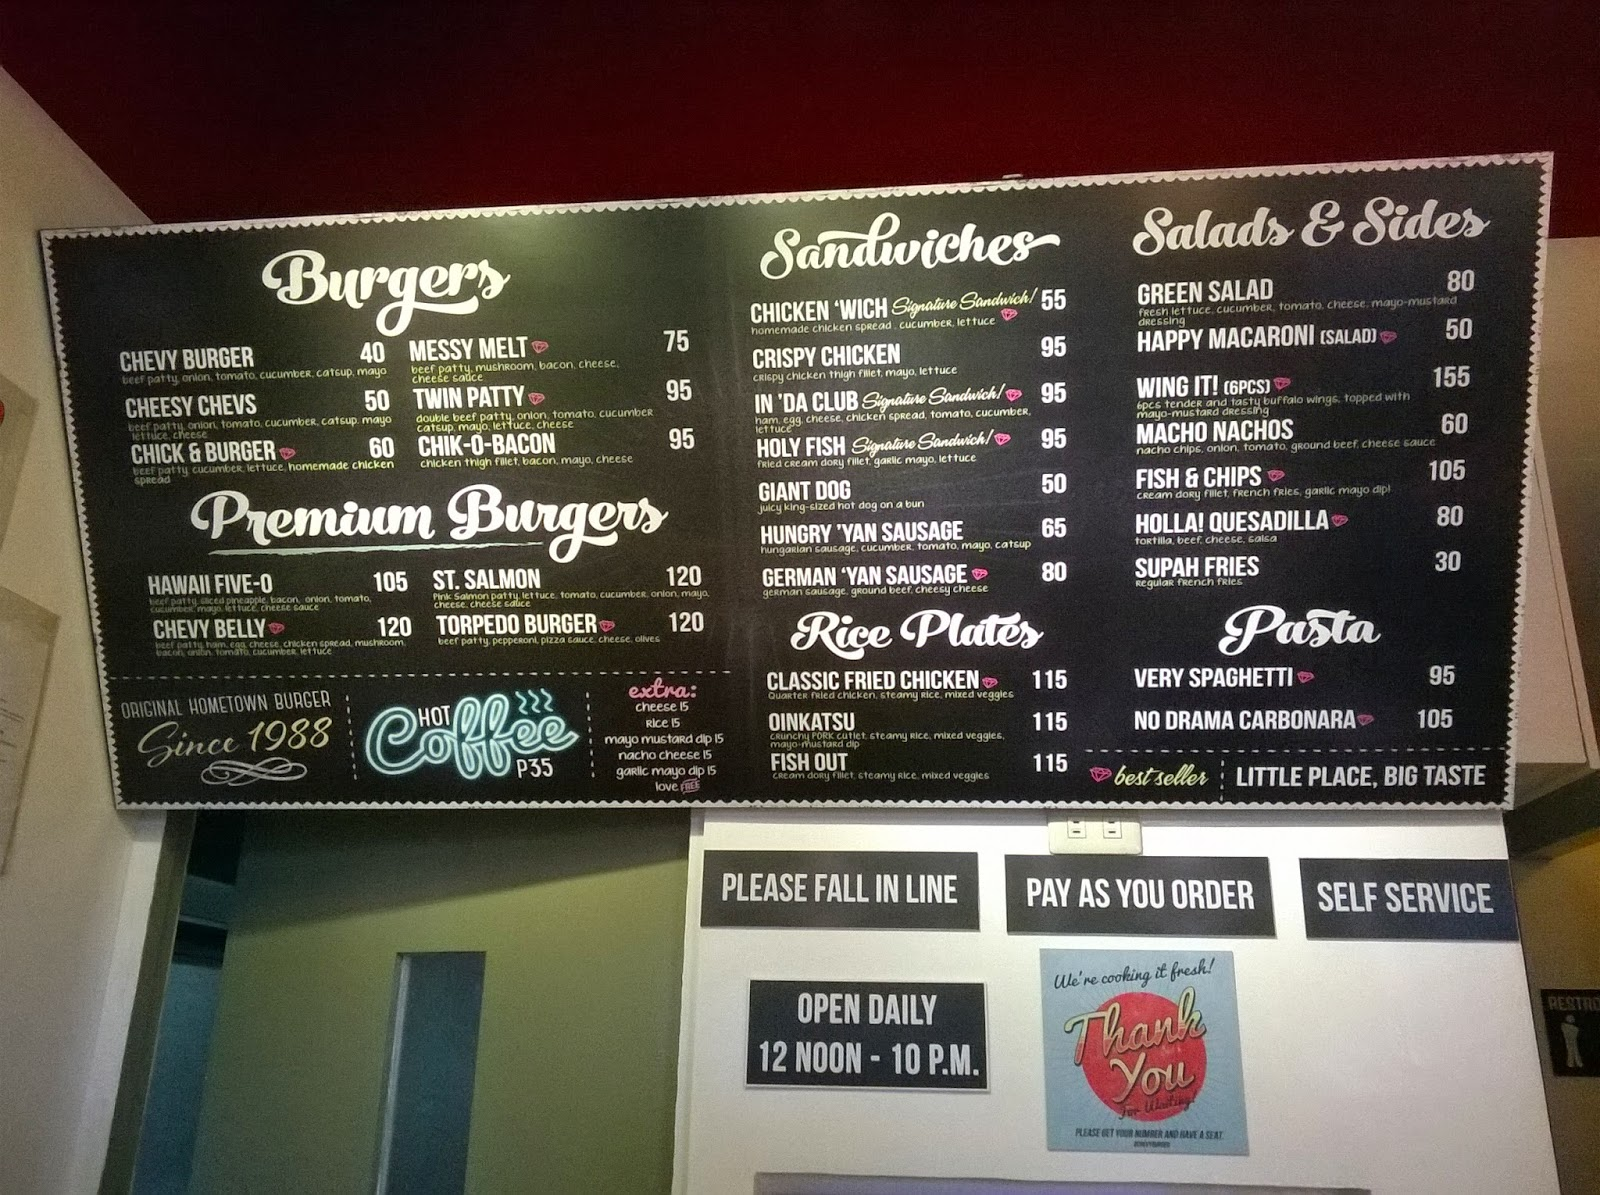 Chevy Burger Antipolo menu